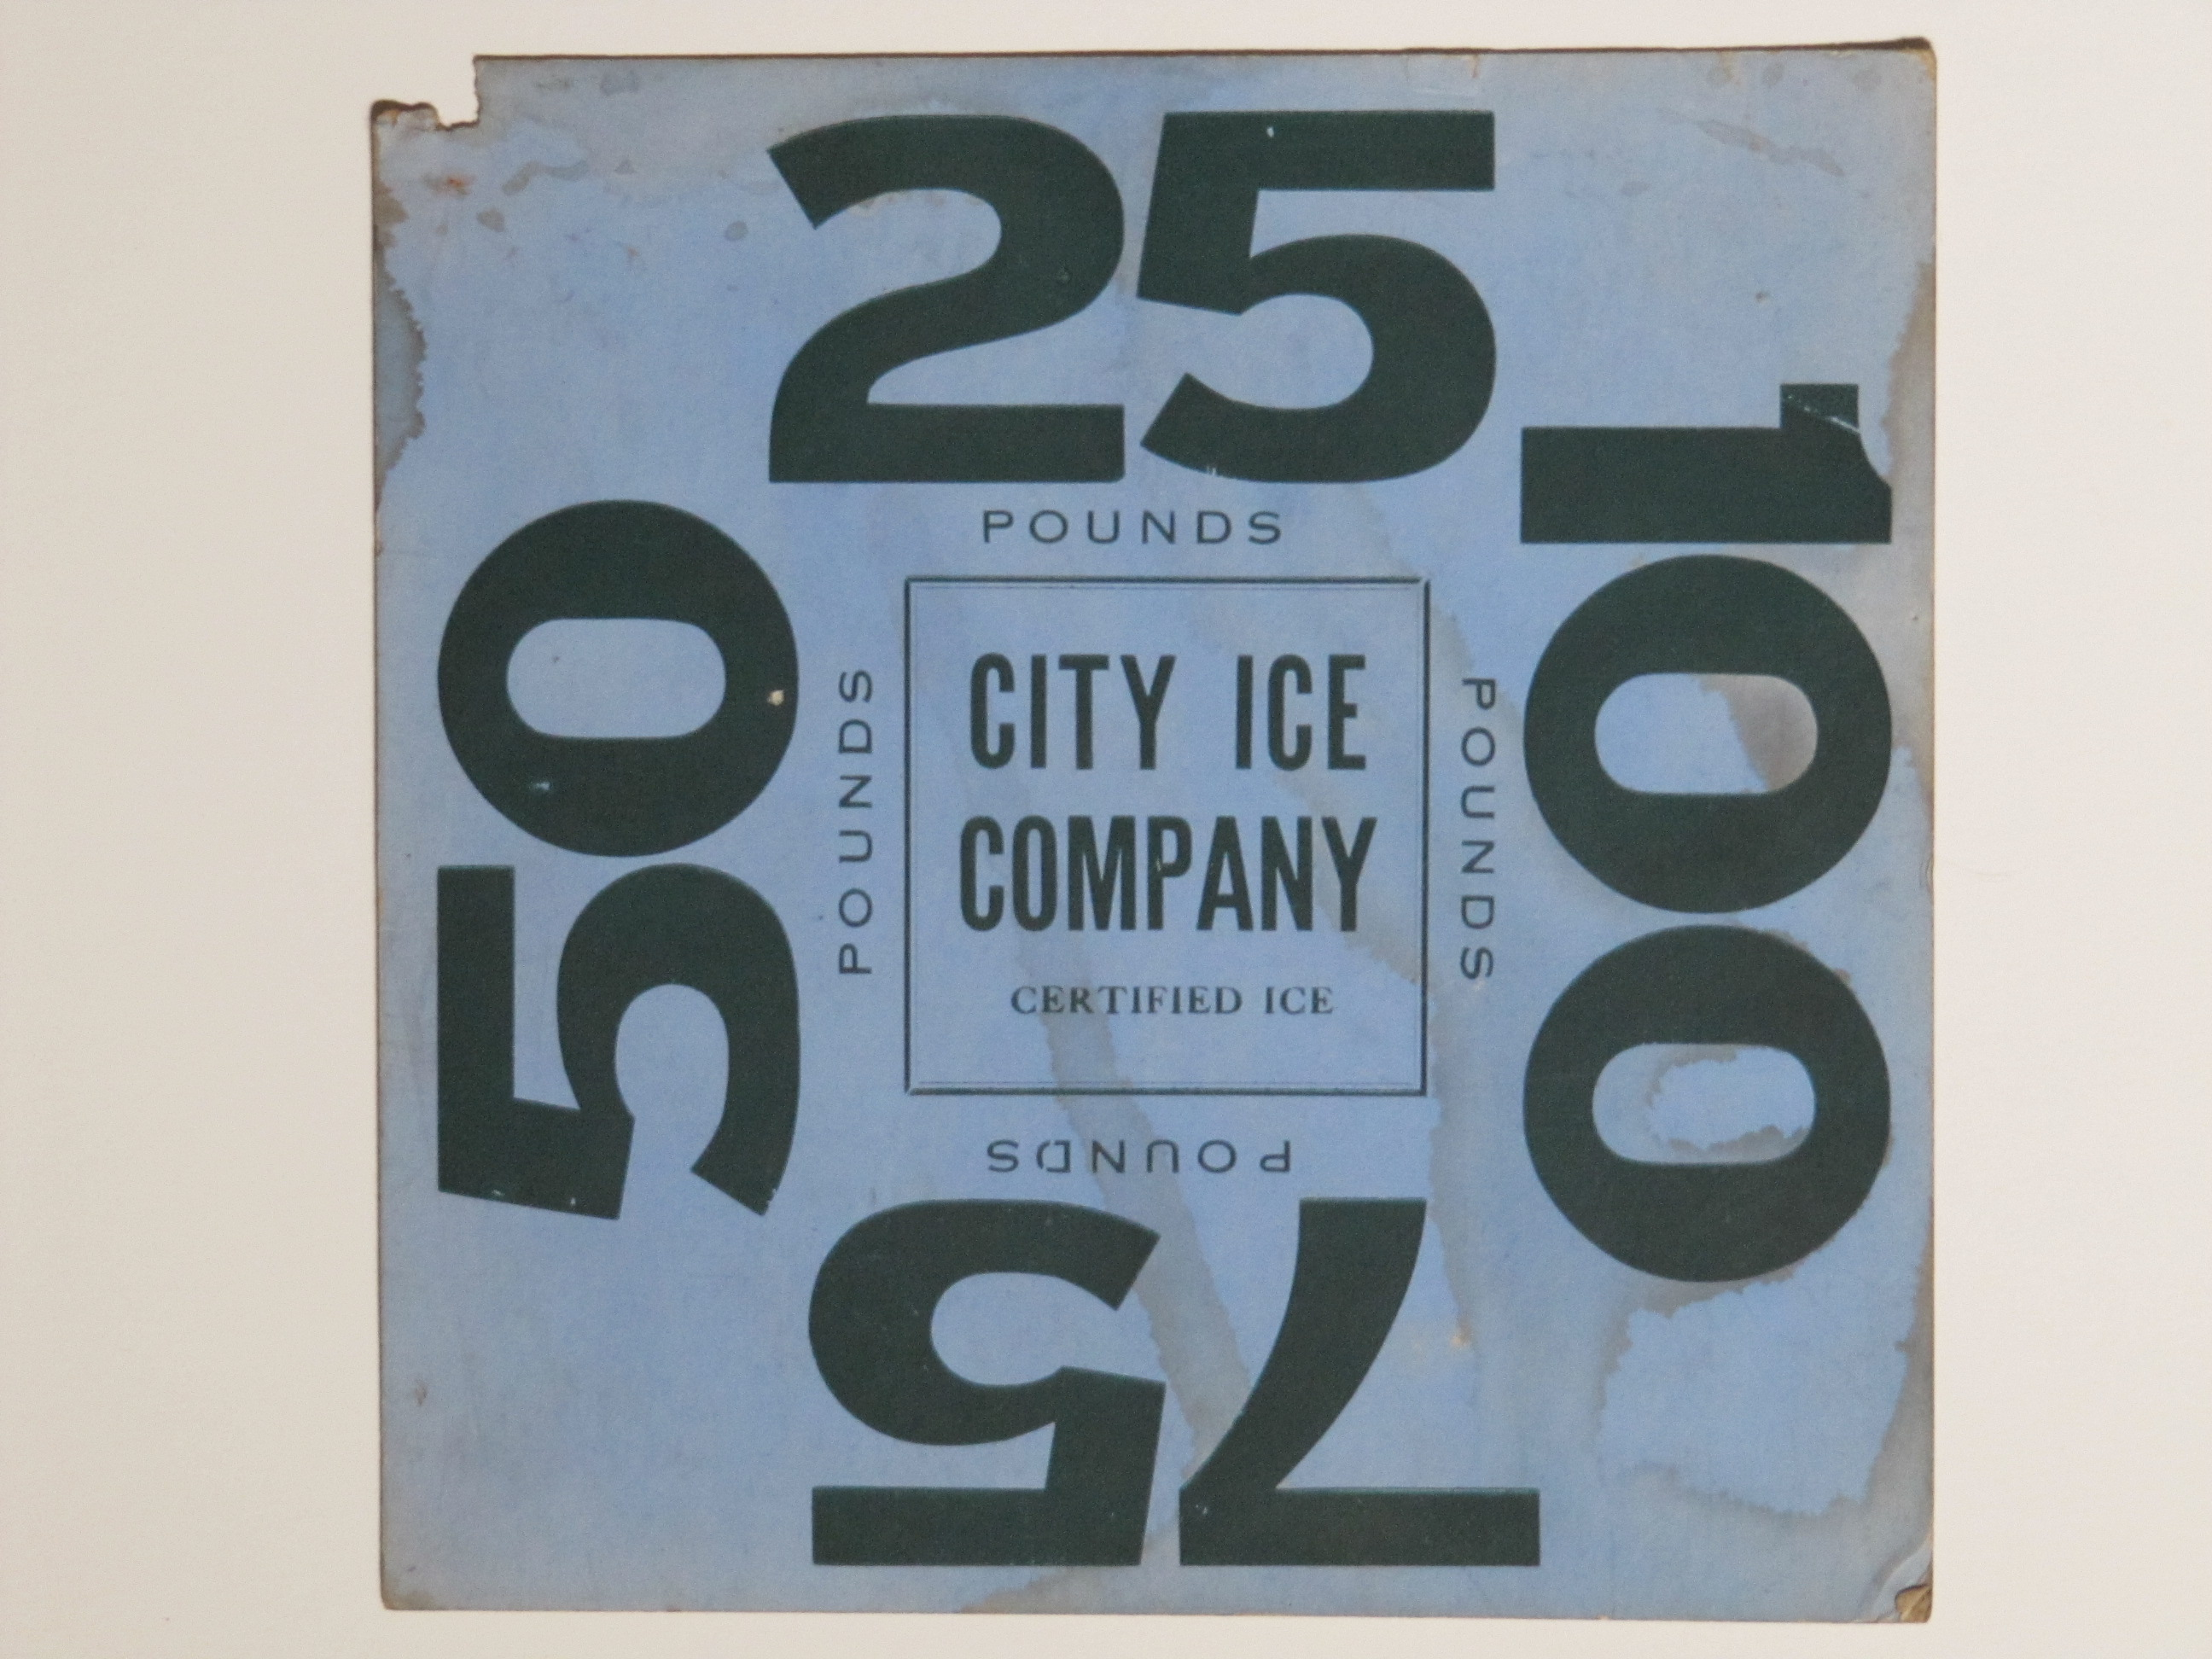 City Ice Company